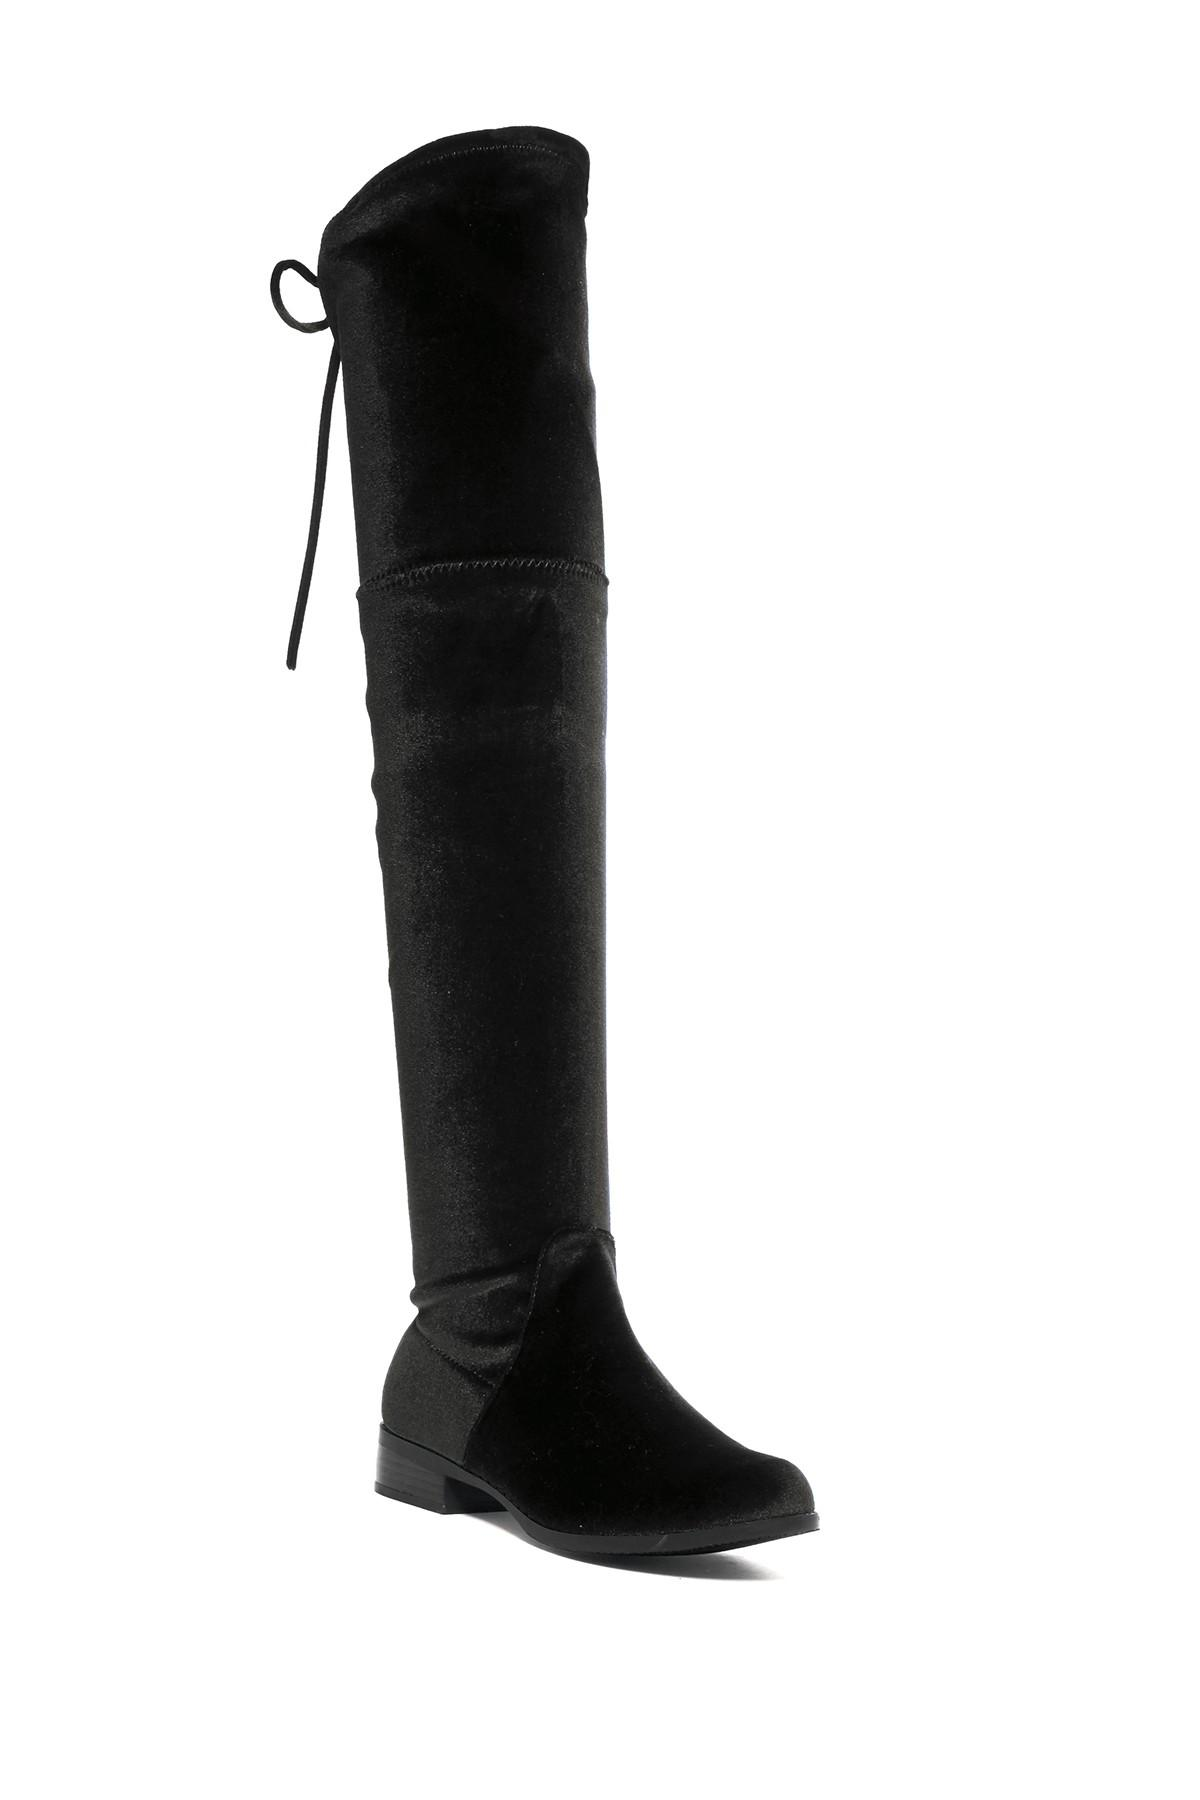 Steve Madden outfits men and women with the season's must-have styles in designer-quality footwear, leather goods and fashion accessories. Choose from riding boots, espadrilles and sneakers to save big as an email member.